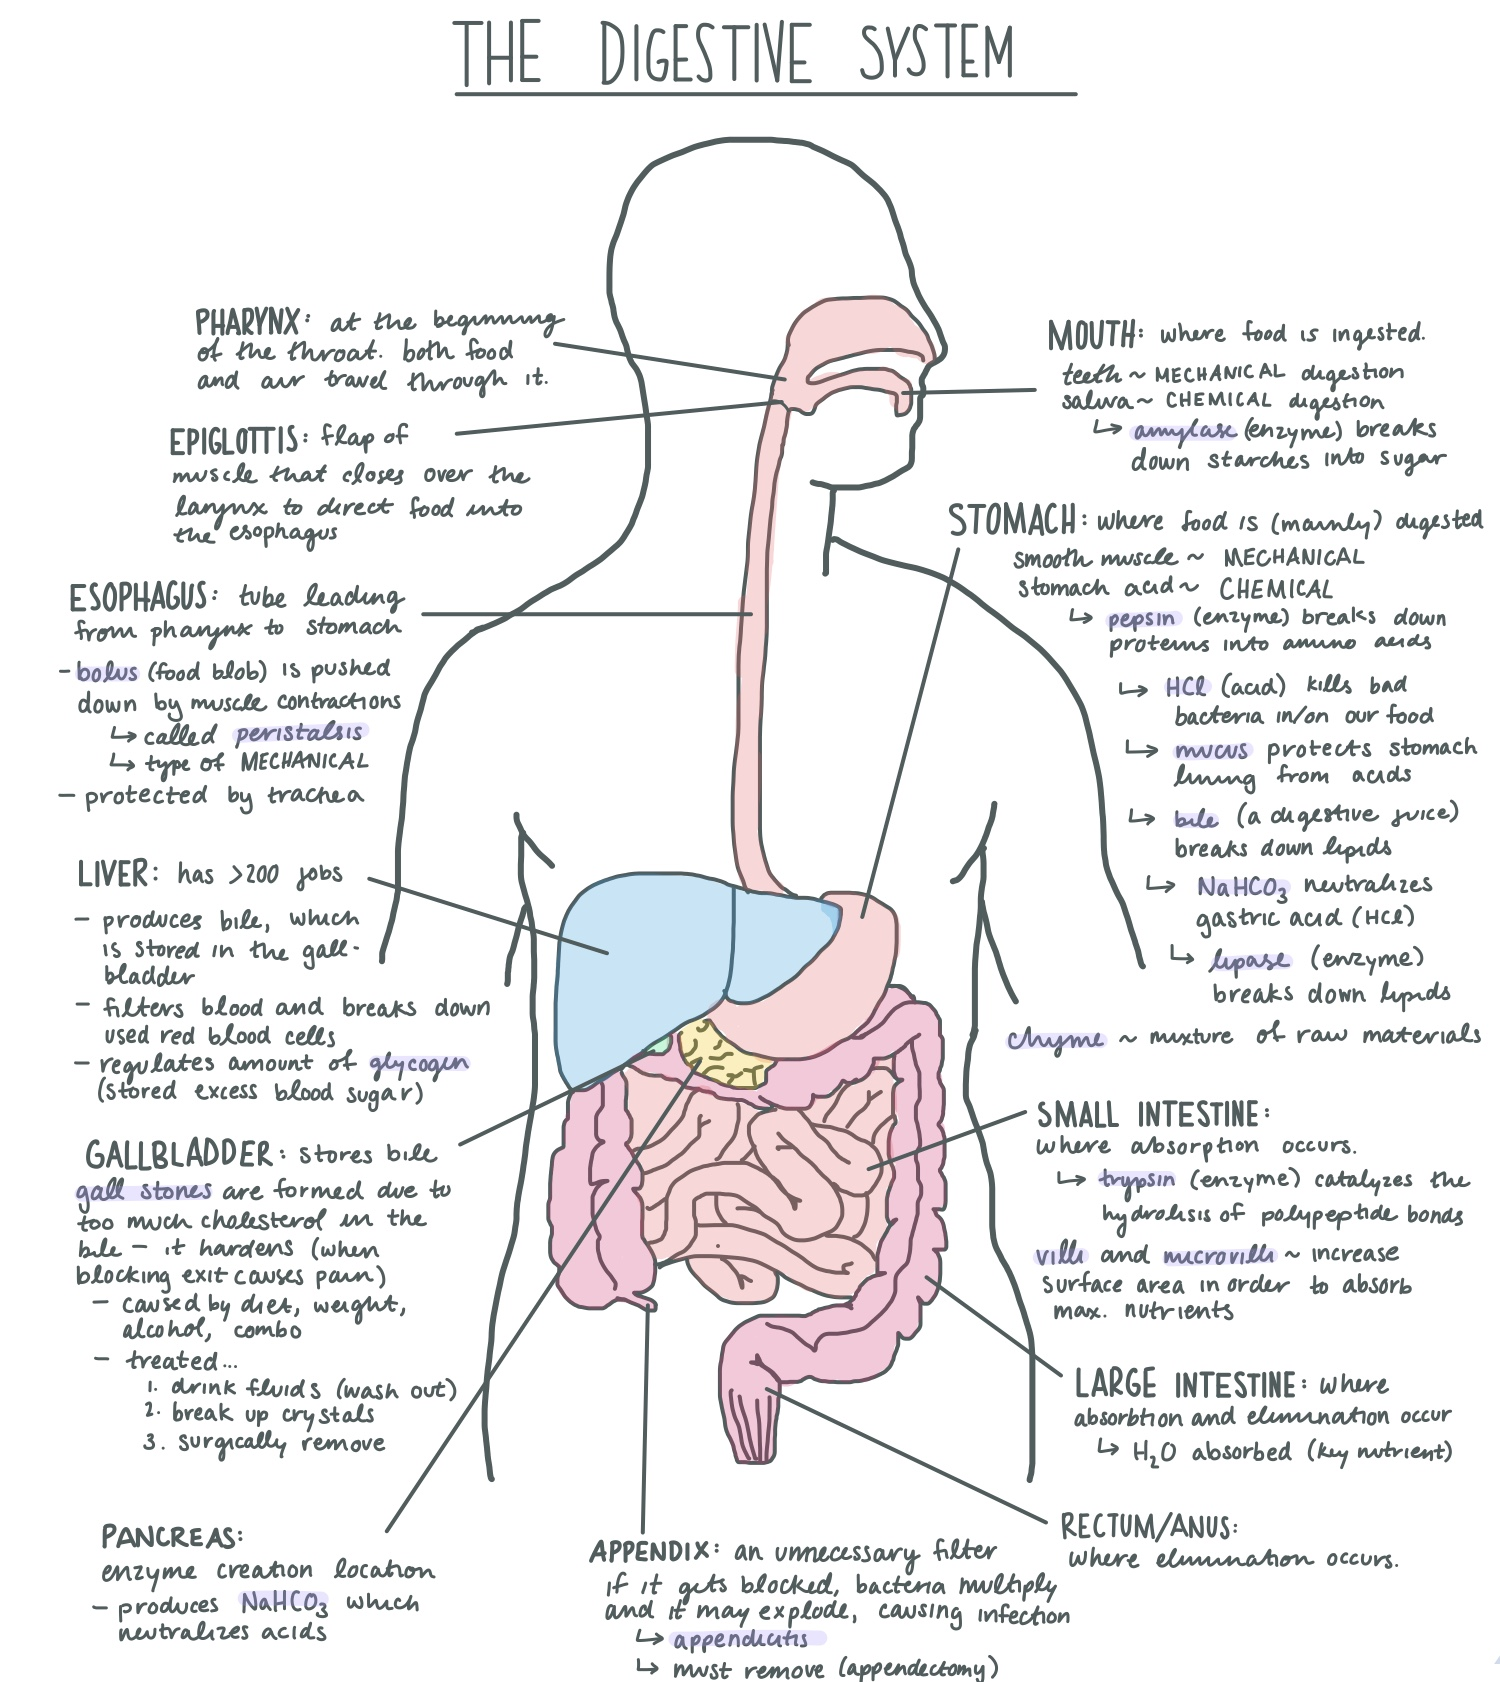 file:digestive system diagram - wikimedia commons